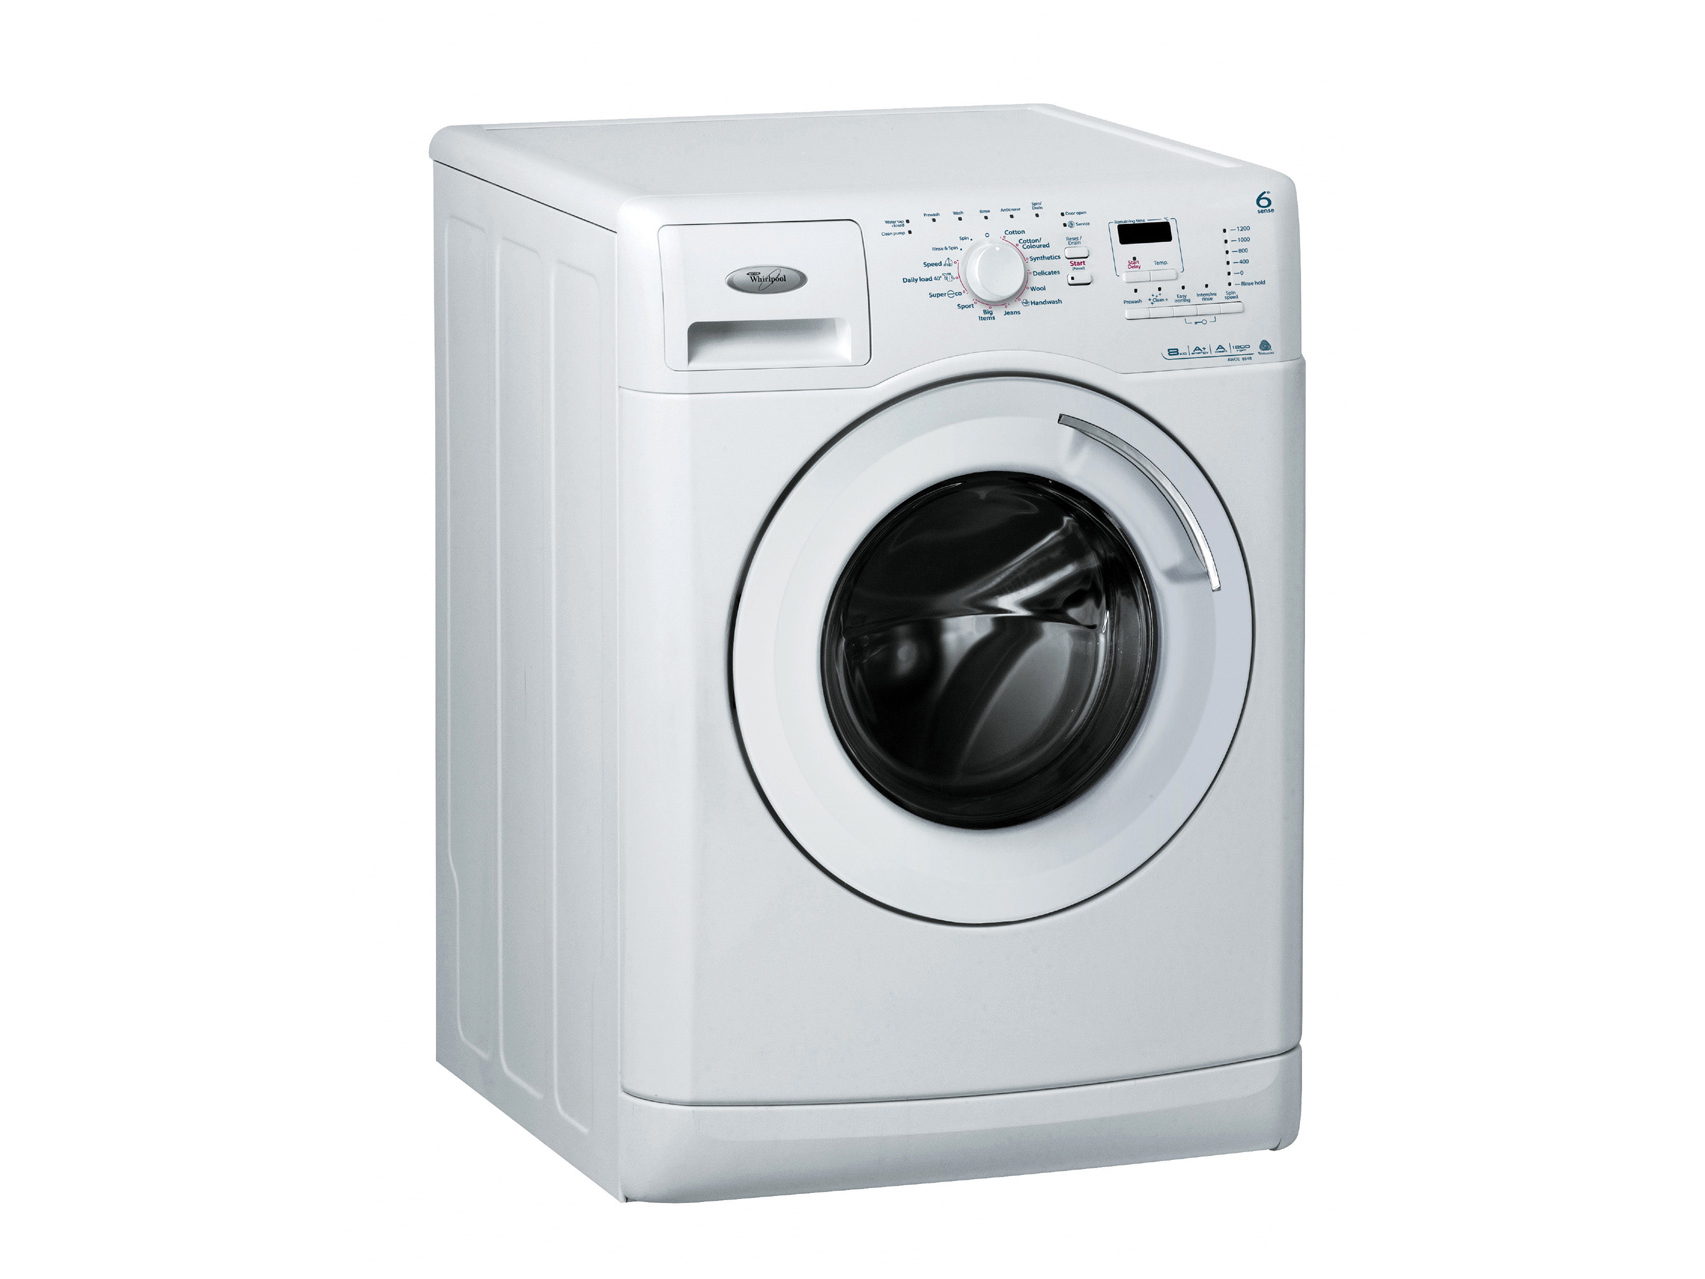 picture of a washing machine